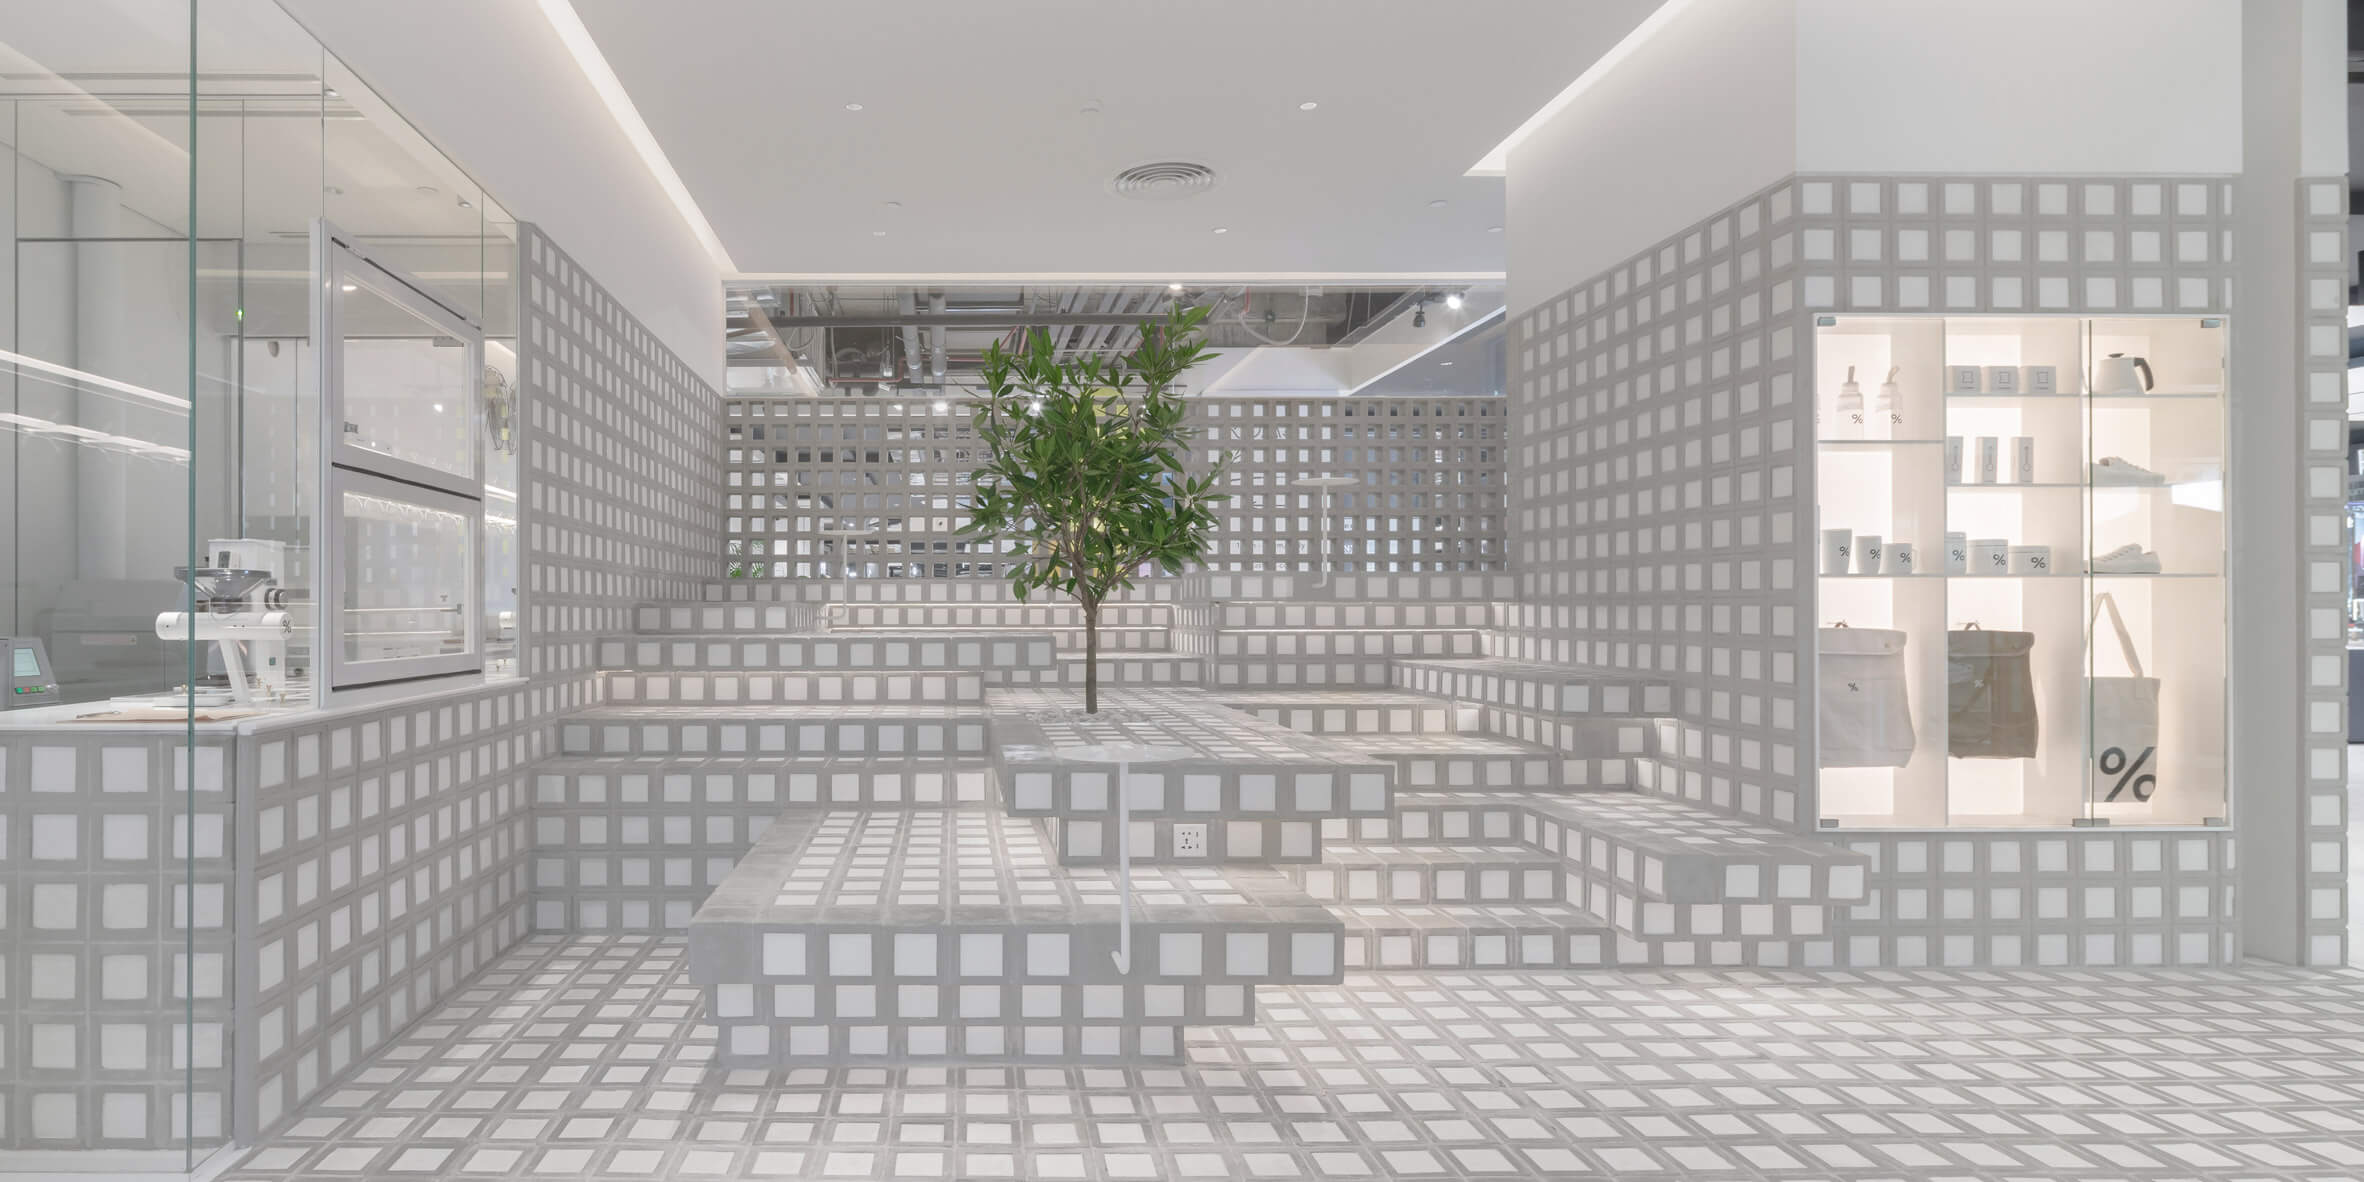 Precht forms counter and stepped seating from handmade bricks in Bangkok cafe